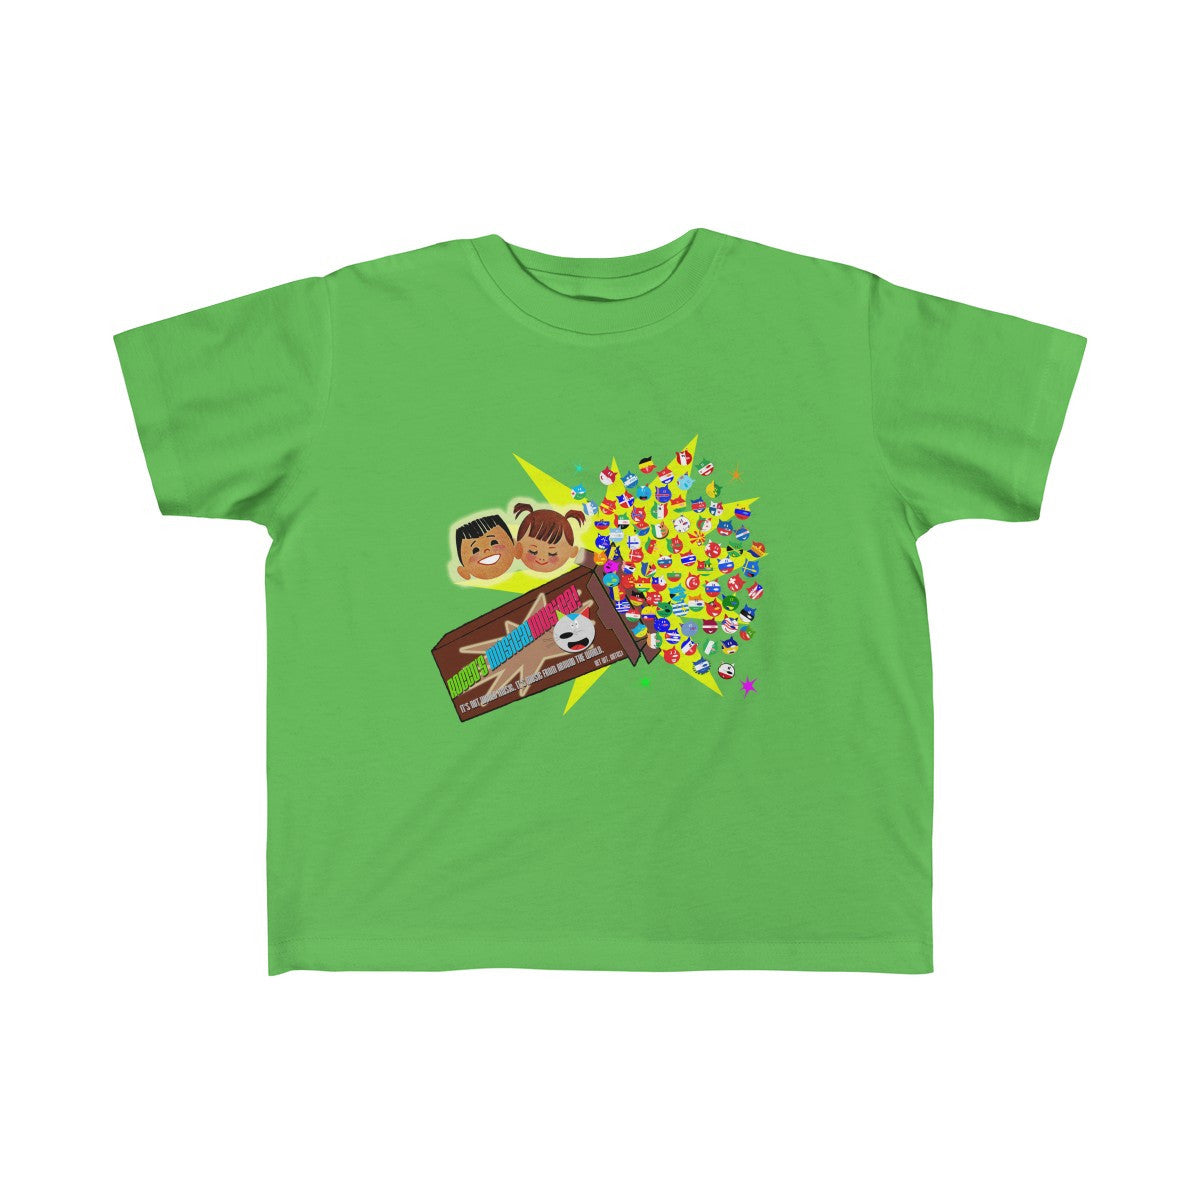 Rocco's Gato Nation Toddler Fine Jersey Tee